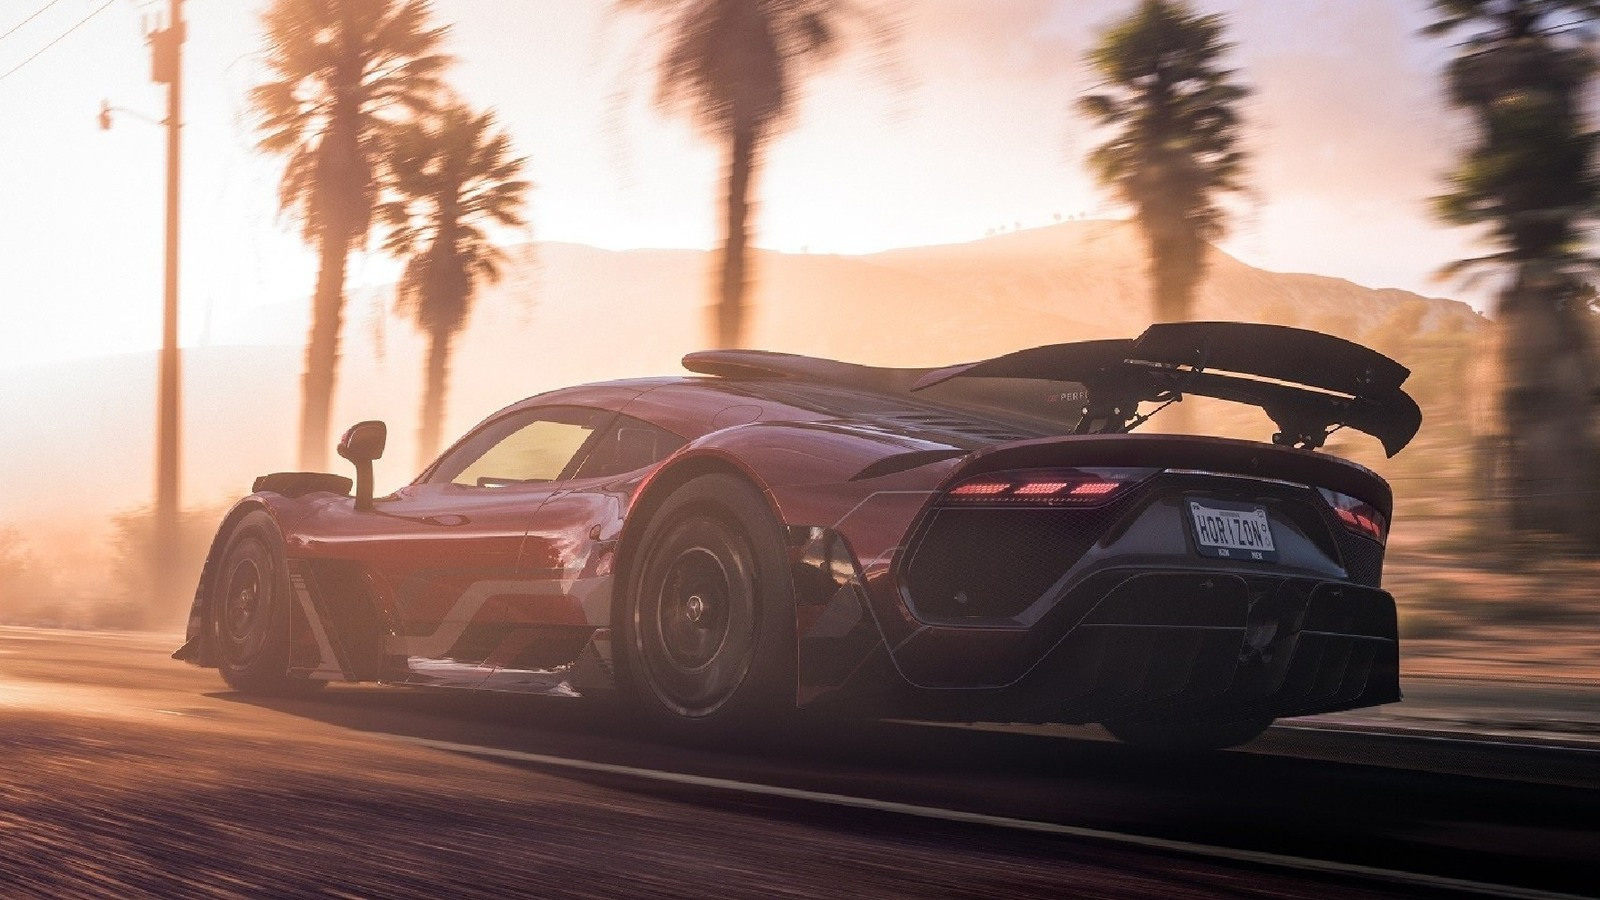 Forza Horizon 5 Release Date, Trailer And Gameplay | il ...